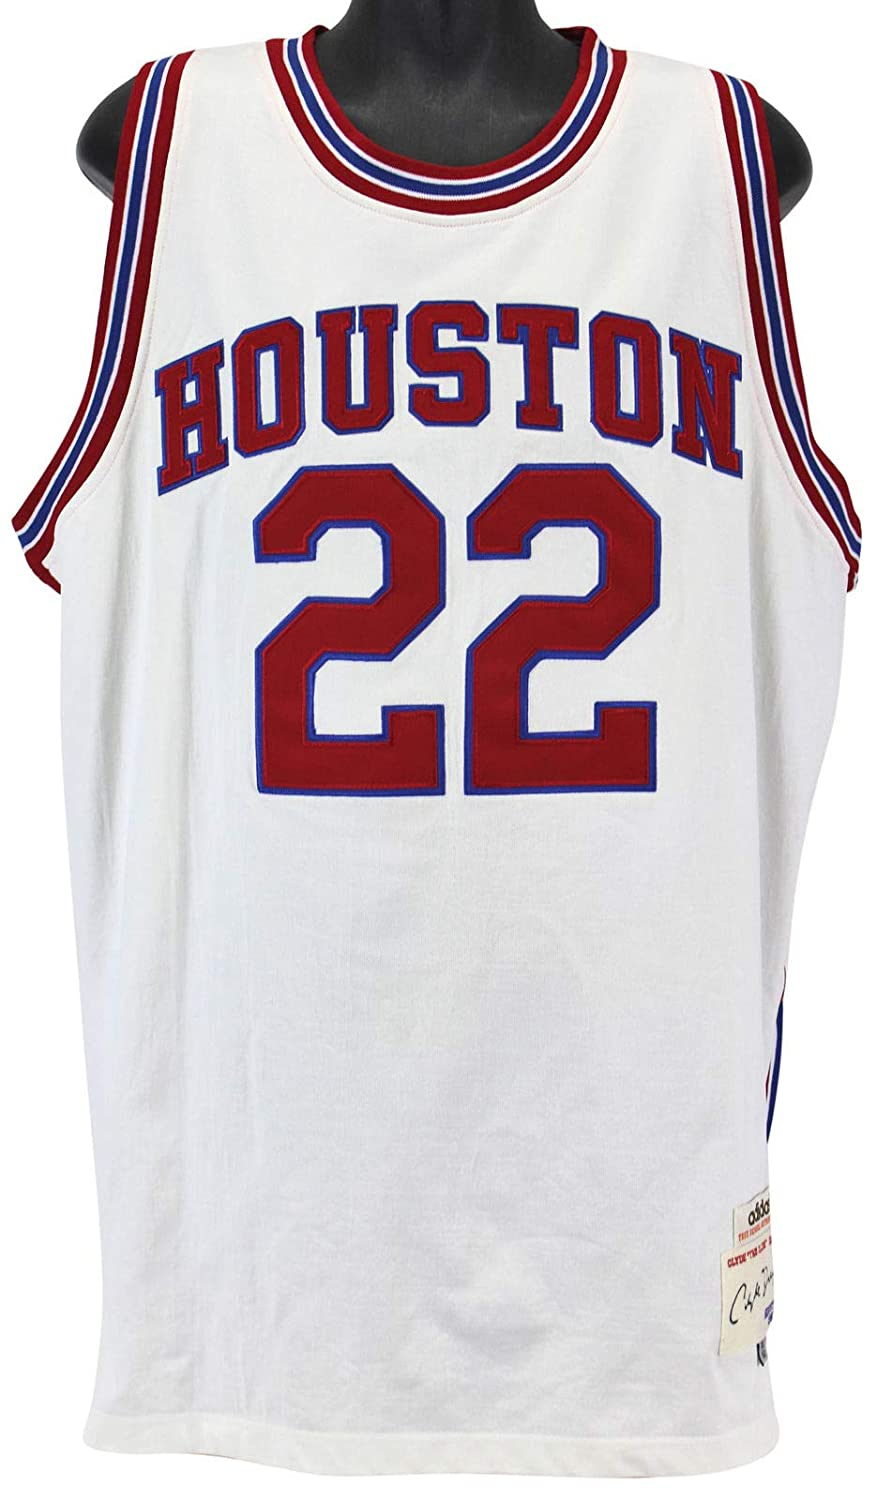 new product 4c2b9 f3939 Rockets Clyde Drexler HOF 04 Autographed Signed White True ...